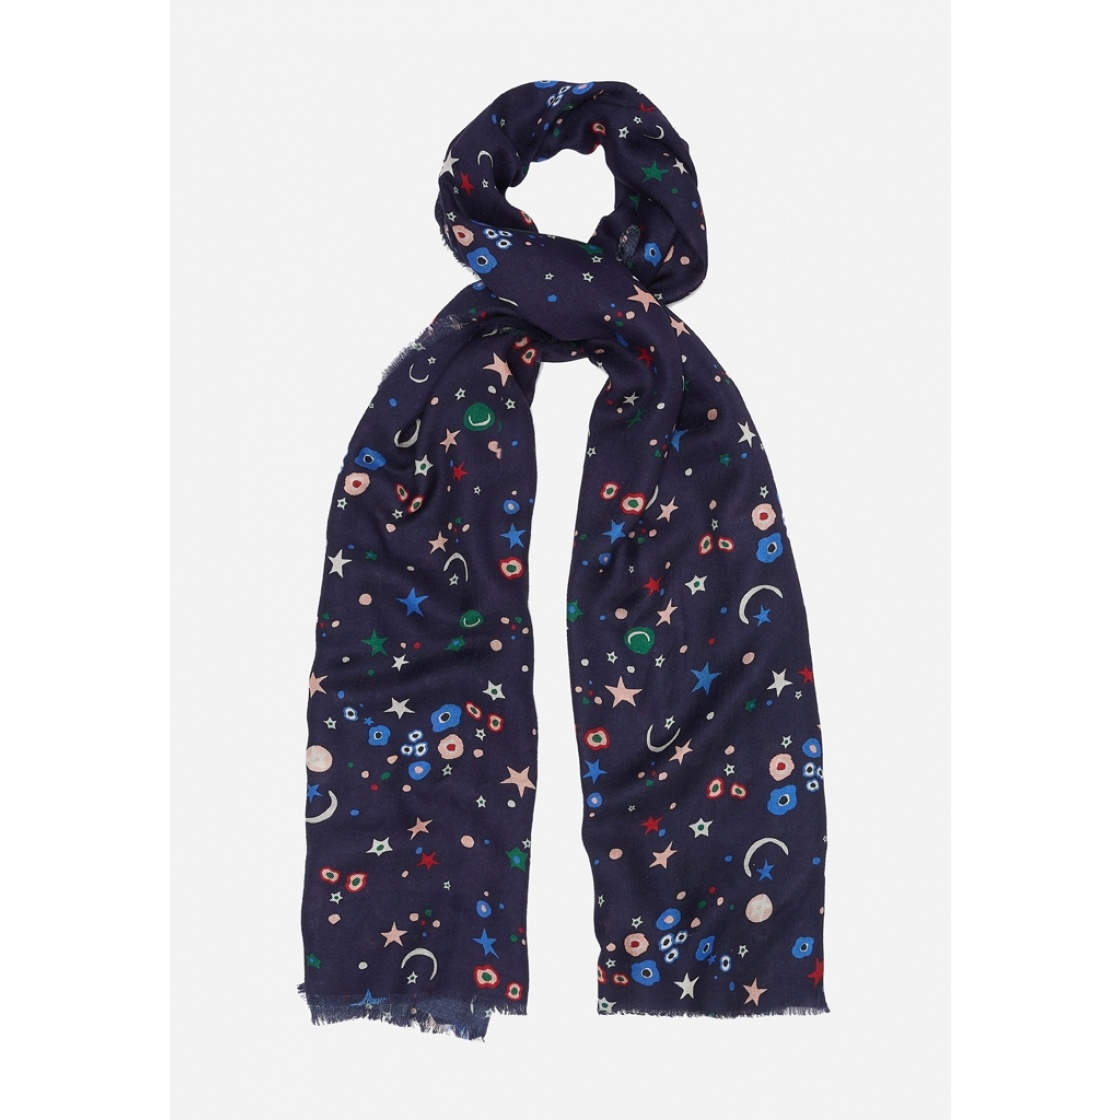 Universe Scarf by Lily & Lionel